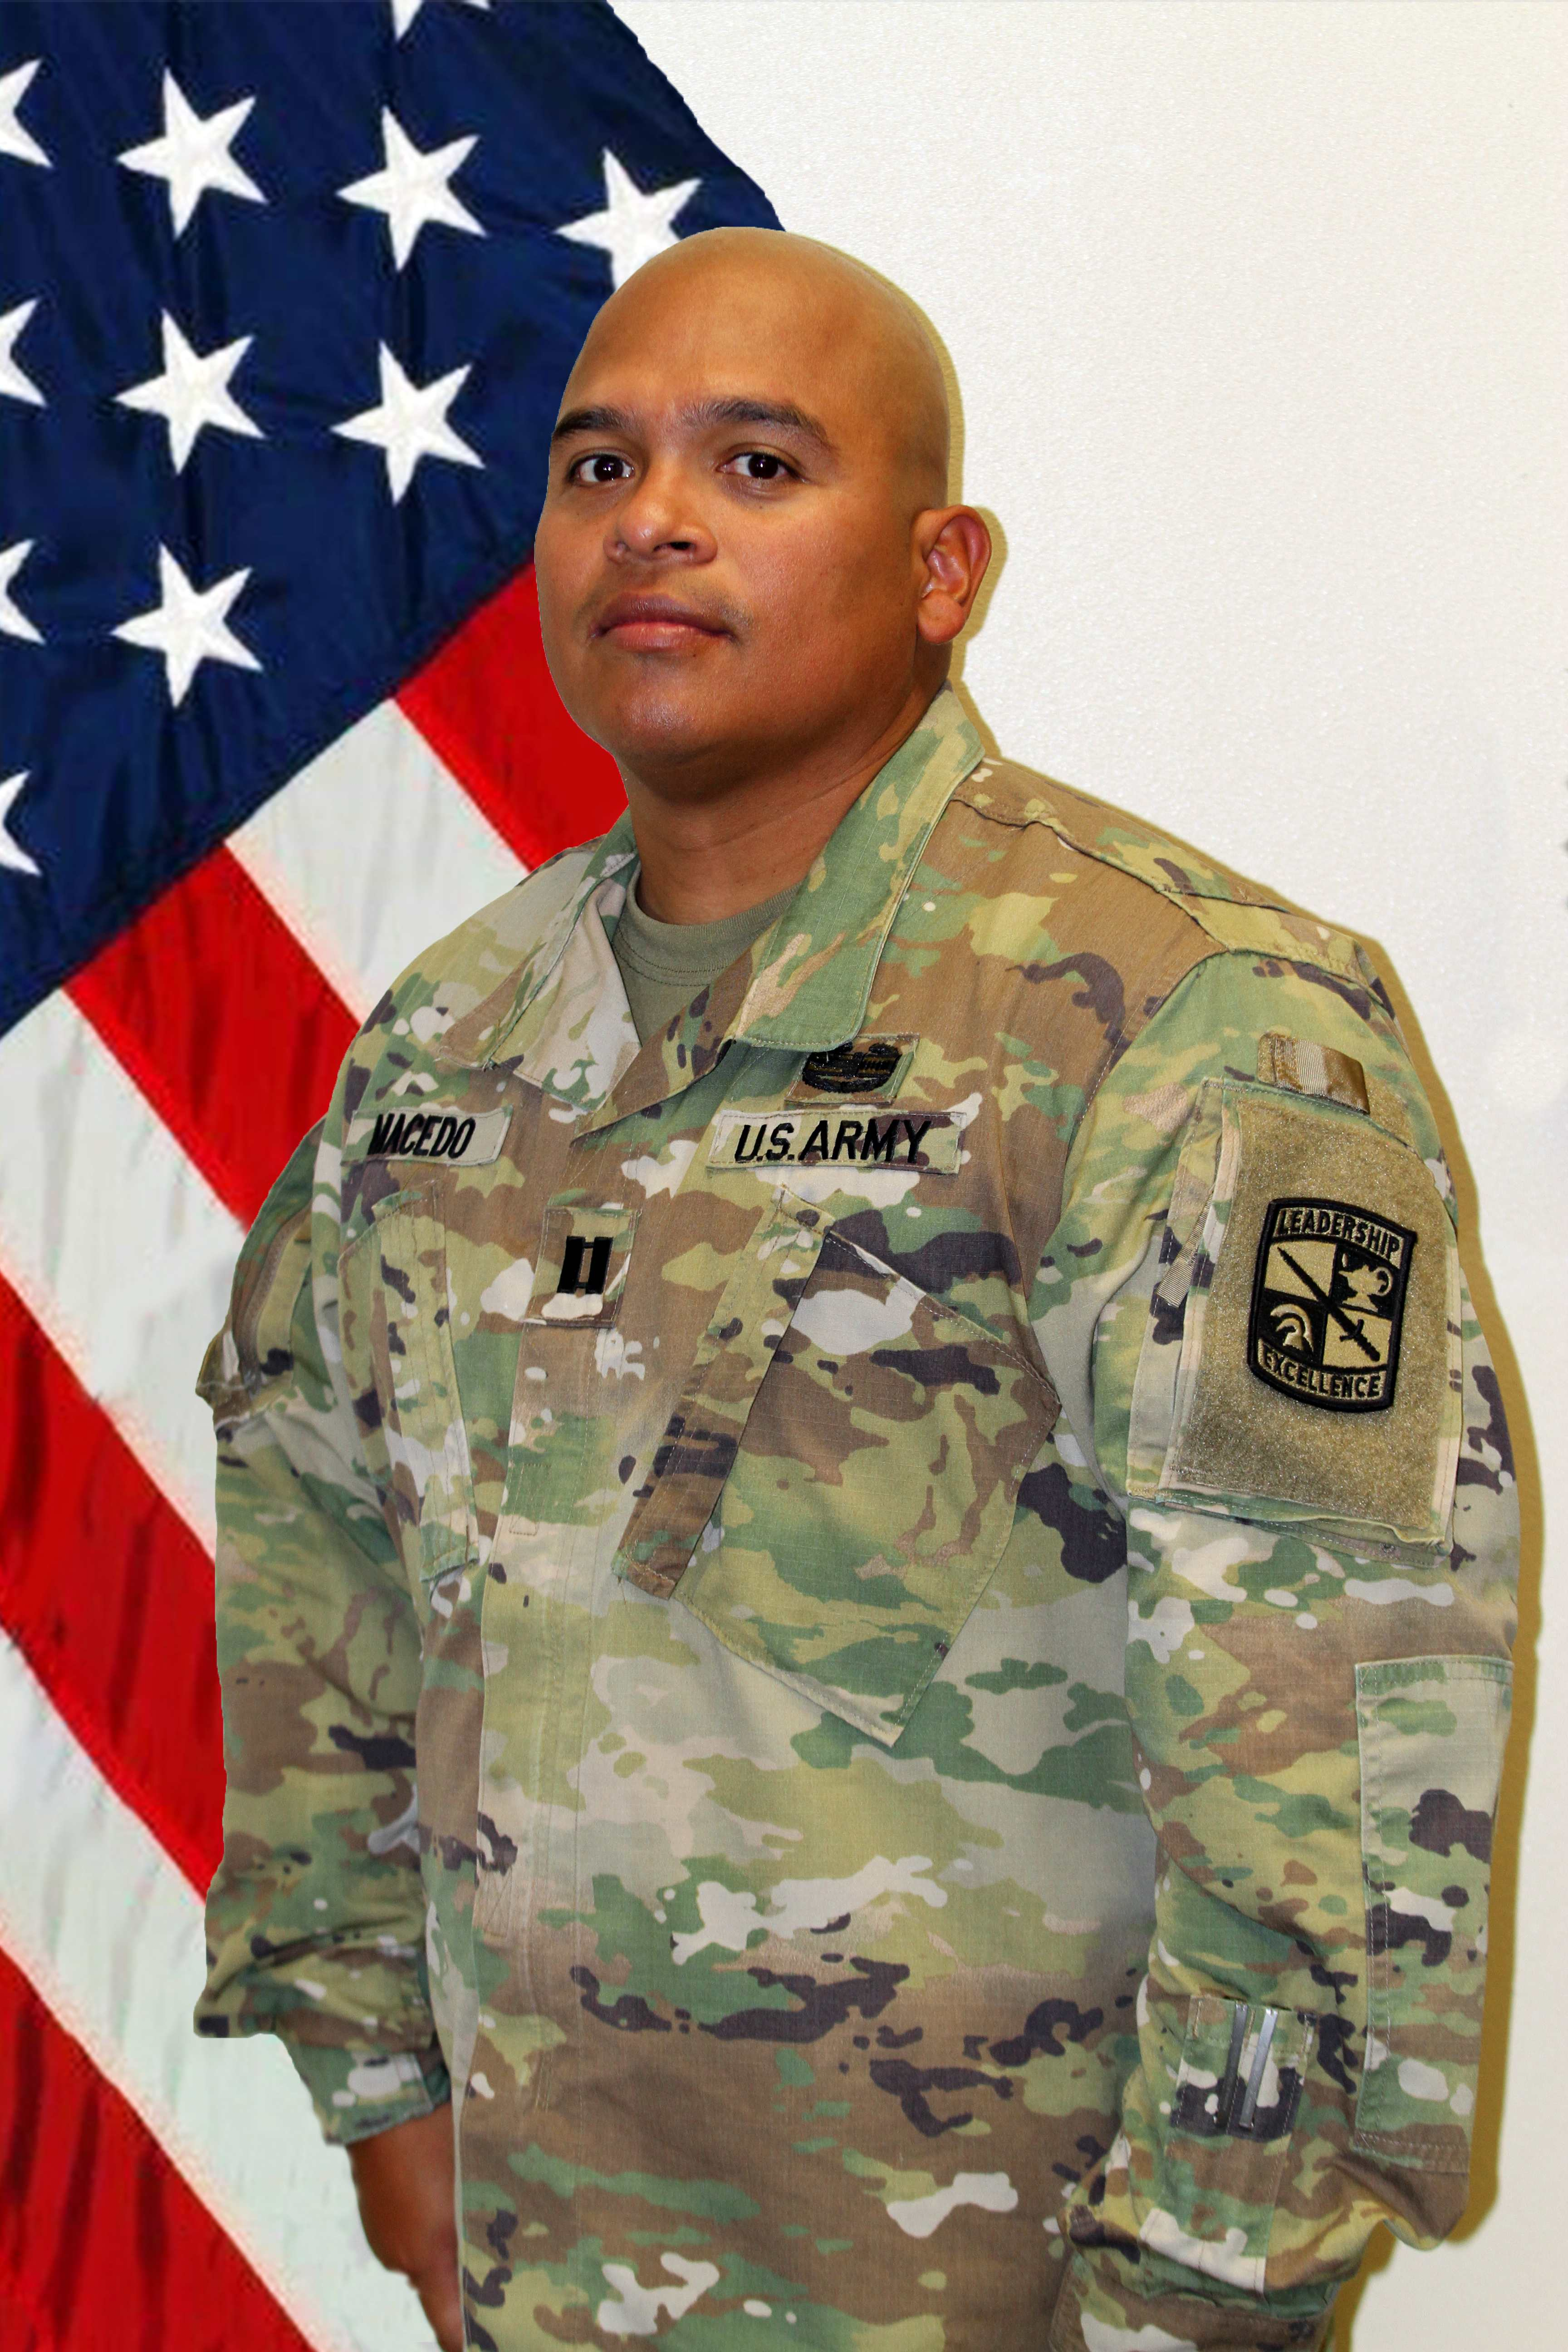 CPT Macedo, XO/Assistant Professor of Military Science